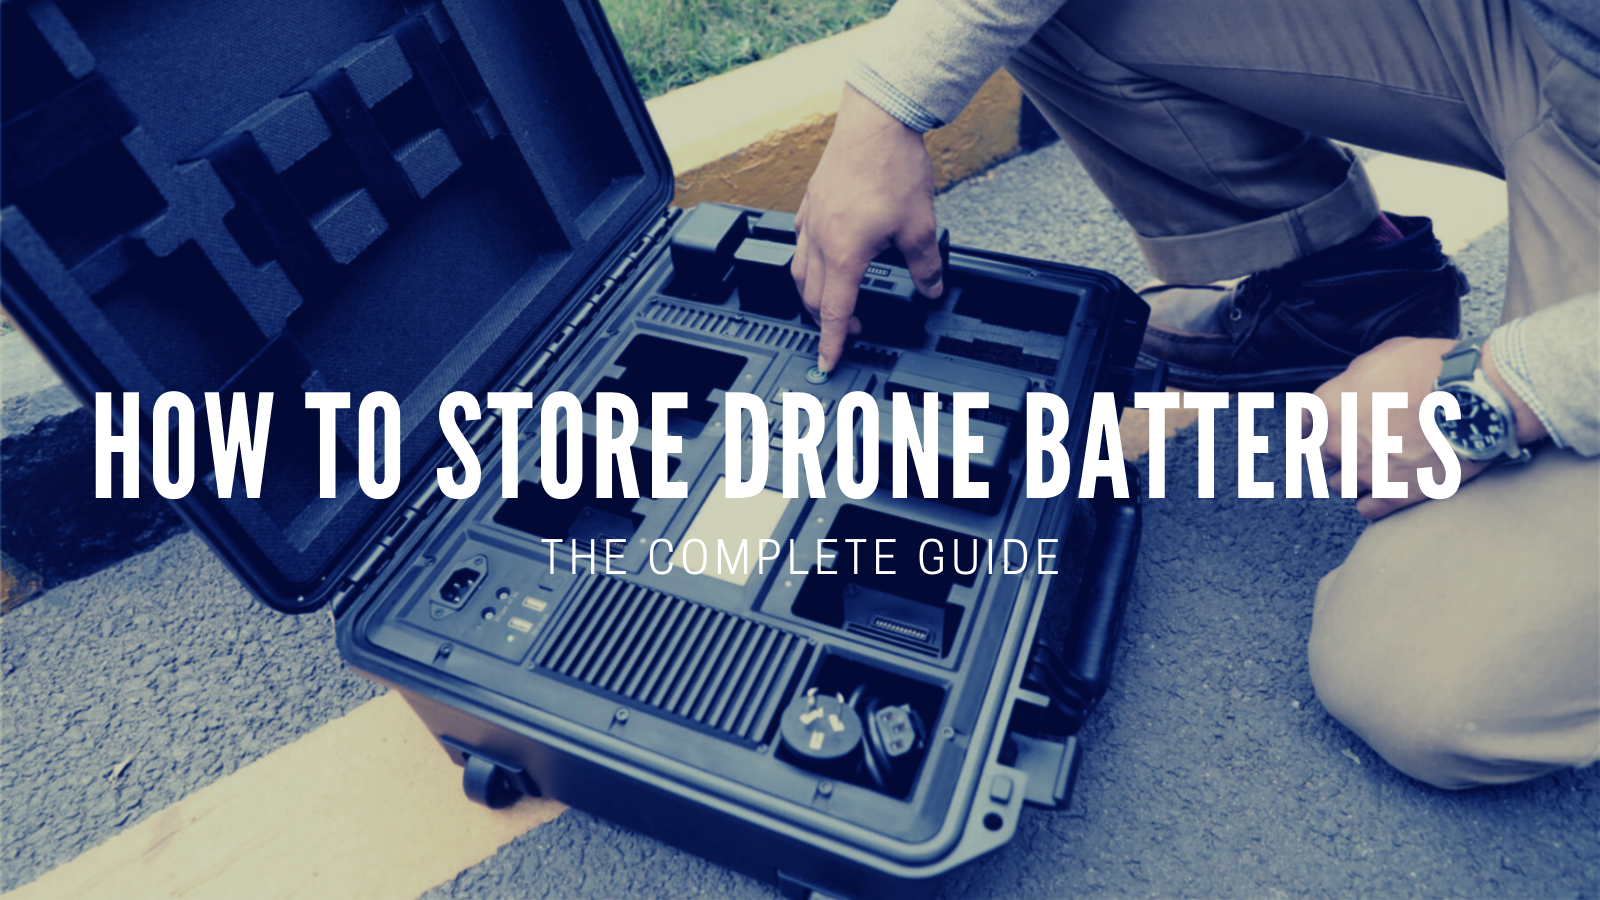 How To Store Drone Batteries